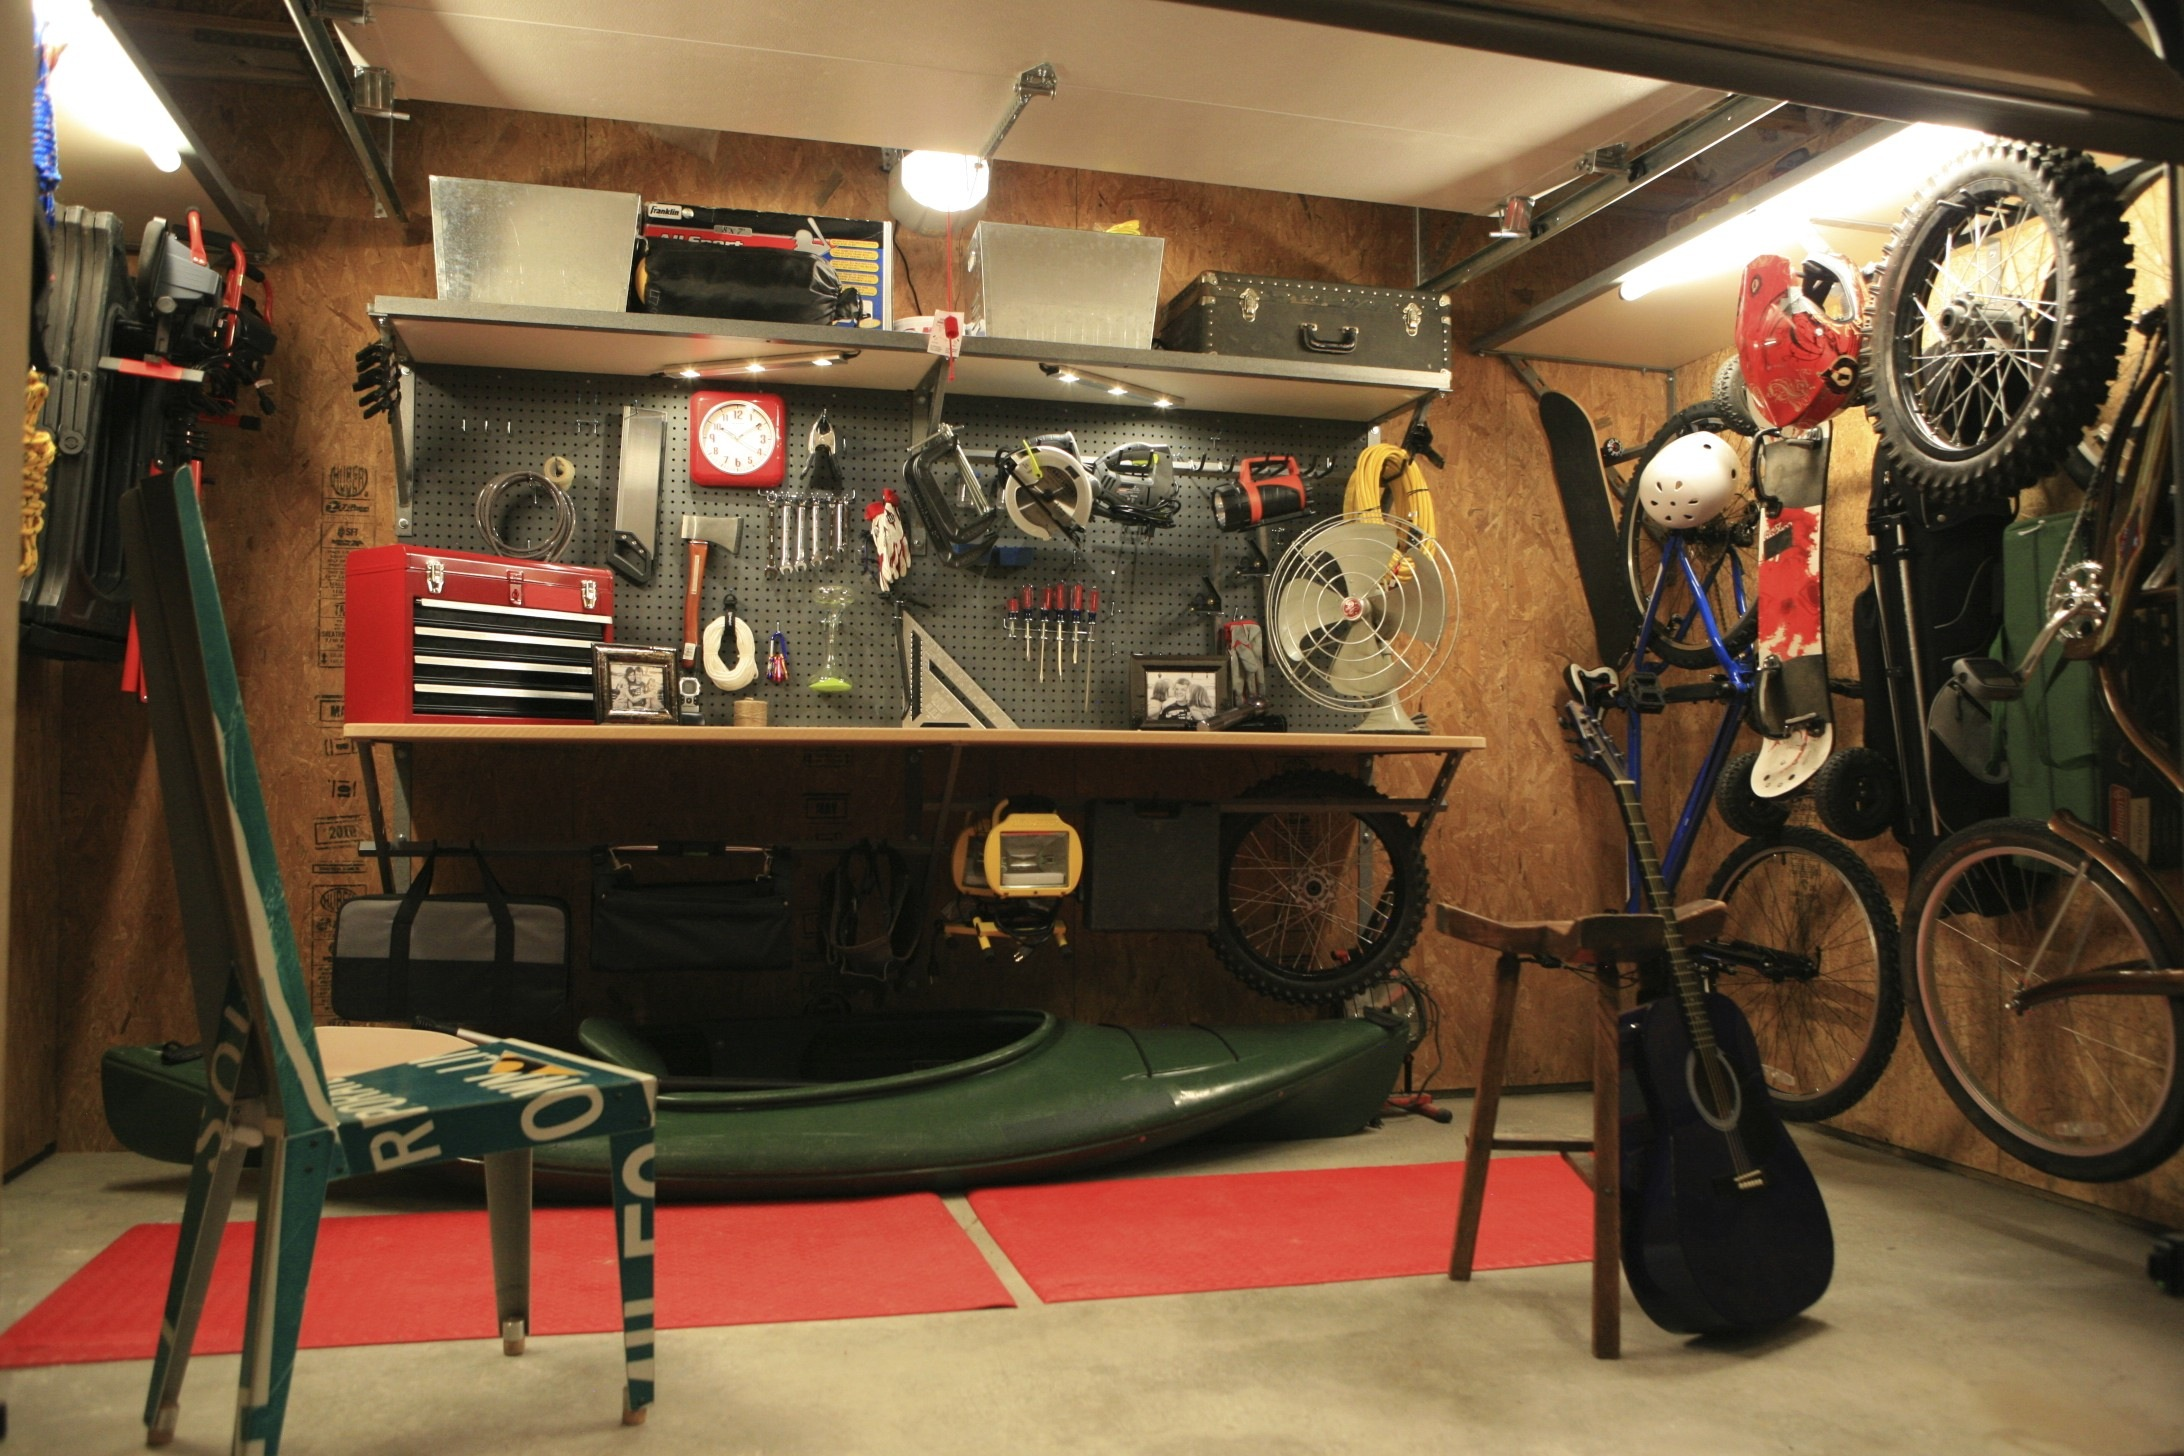 25 Garage Design Ideas For Your Home on Garage Decorating Ideas  id=76768